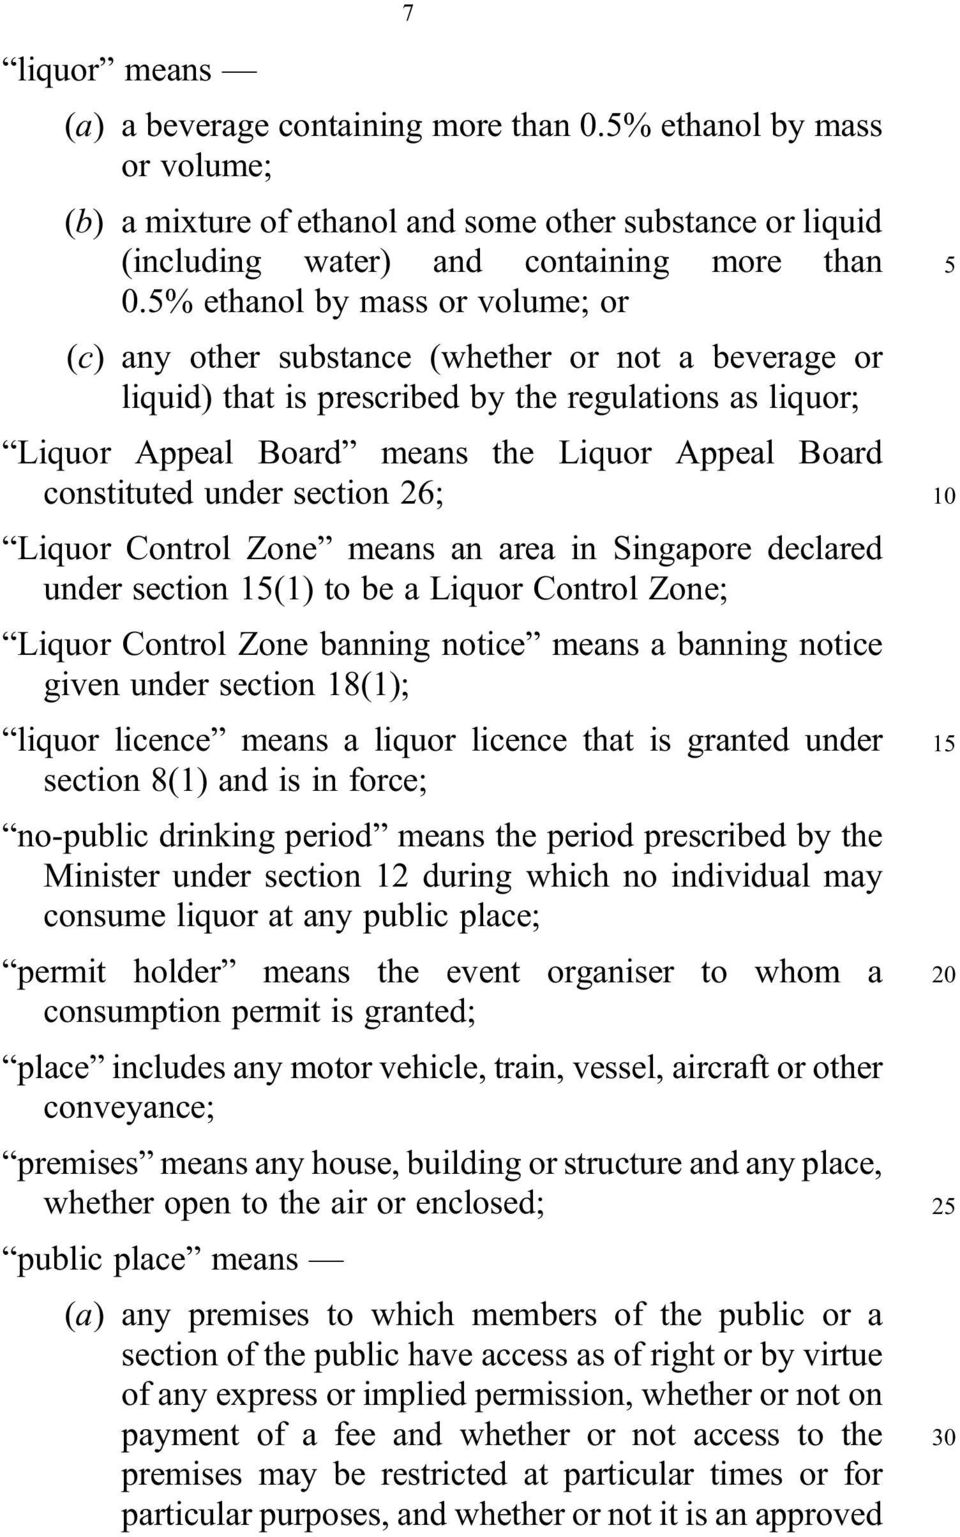 constituted under section 26; Liquor Control Zone means an area in Singapore declared under section 15(1) to be a Liquor Control Zone; Liquor Control Zone banning notice means a banning notice given